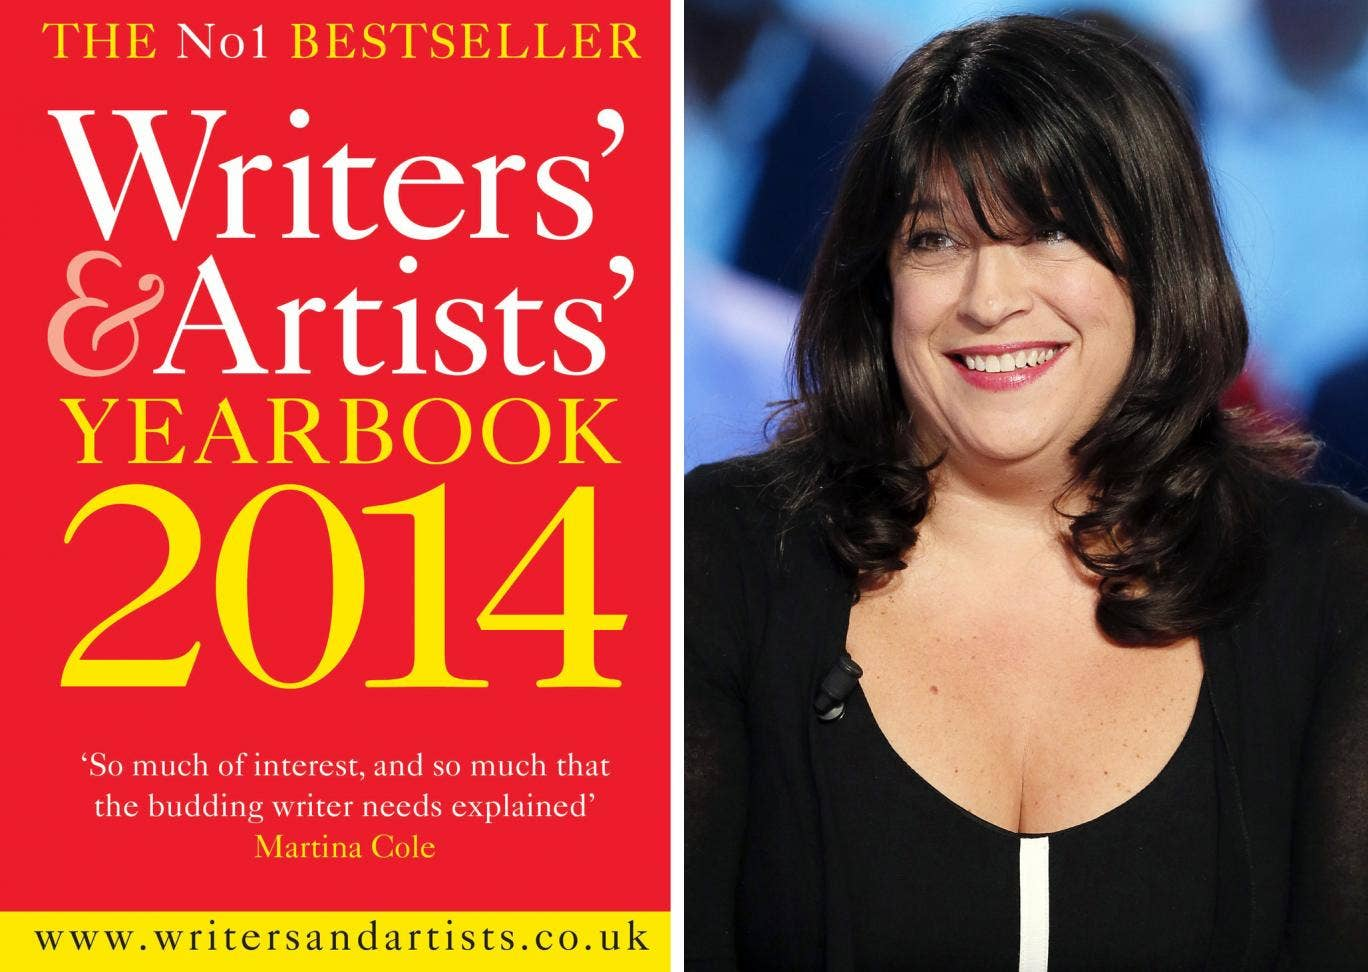 A chapter on writing erotic fiction is to feature in the 'Writers' & Artists' Yearbook' for the first time following the success of EL James' 'Fifty Shades of Grey' (pictured)